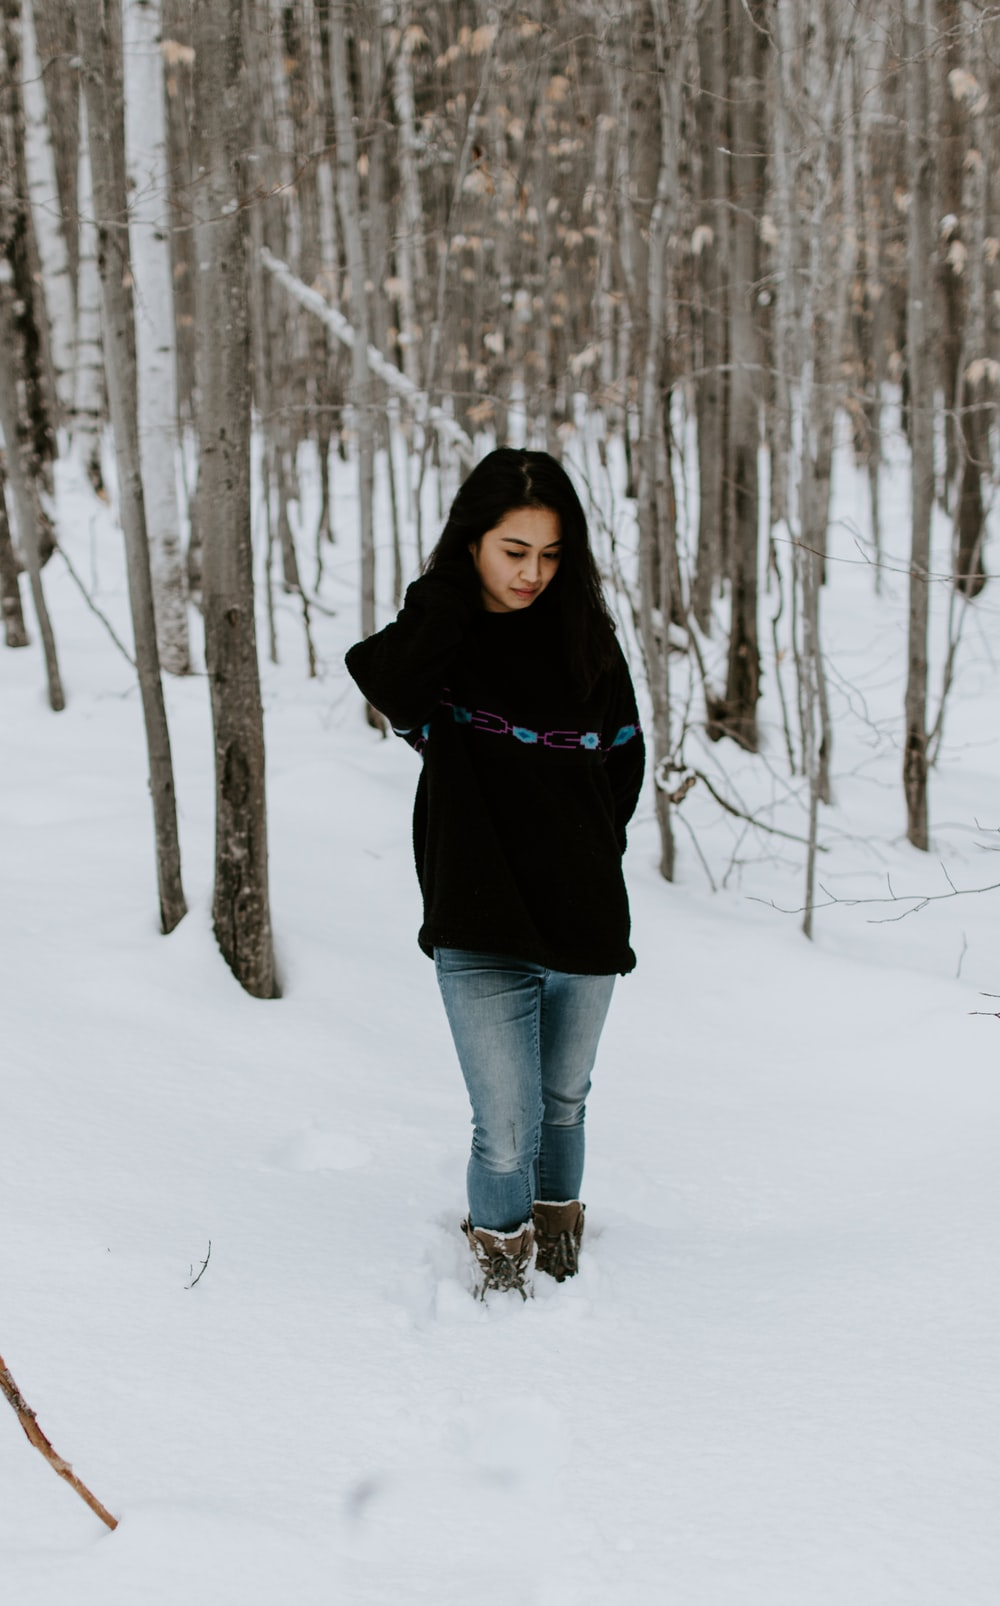 woman in black shirt standing on snow